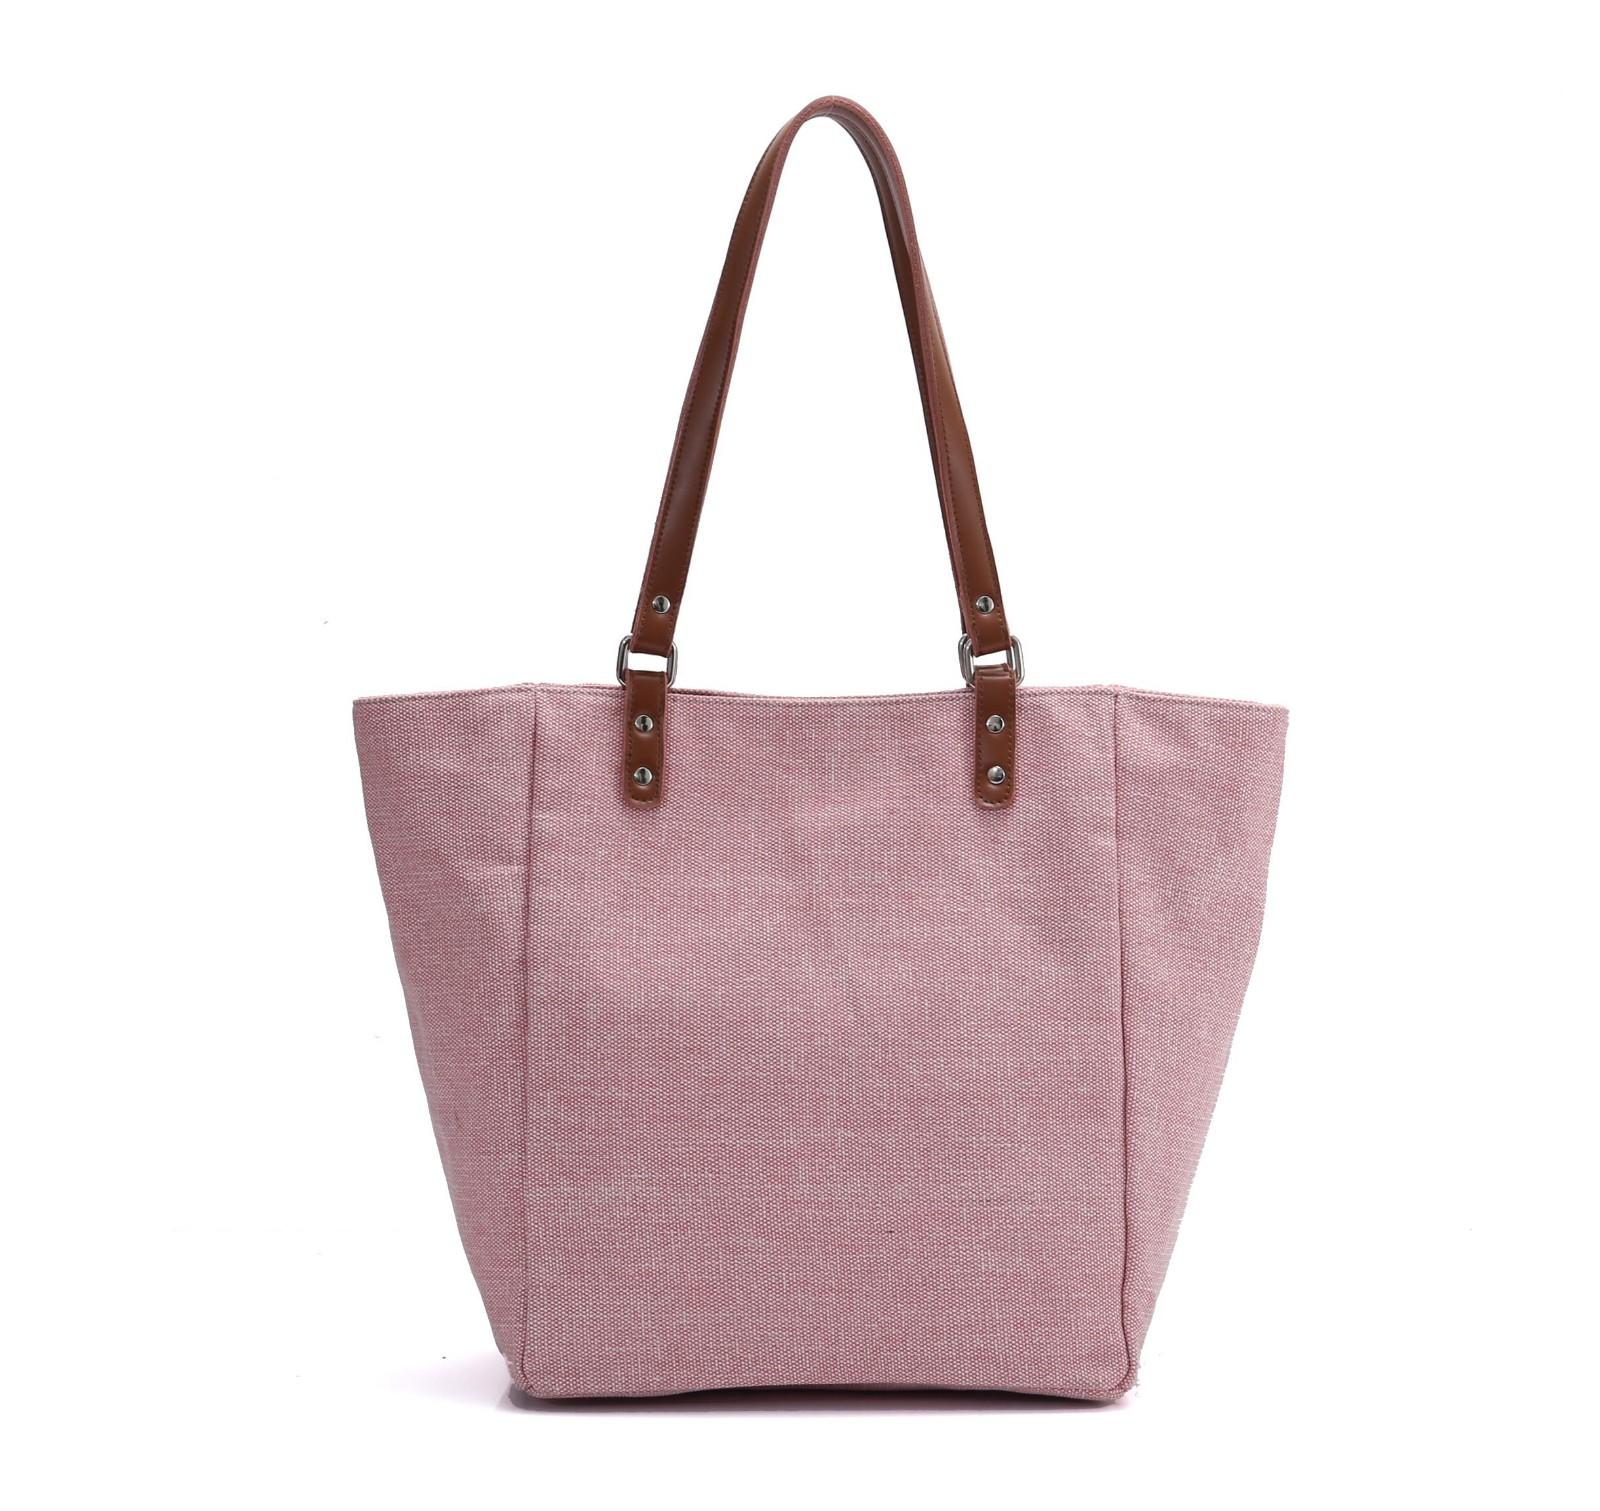 ANGEDANLIA bags canvas and leather bag with zipper for daily life